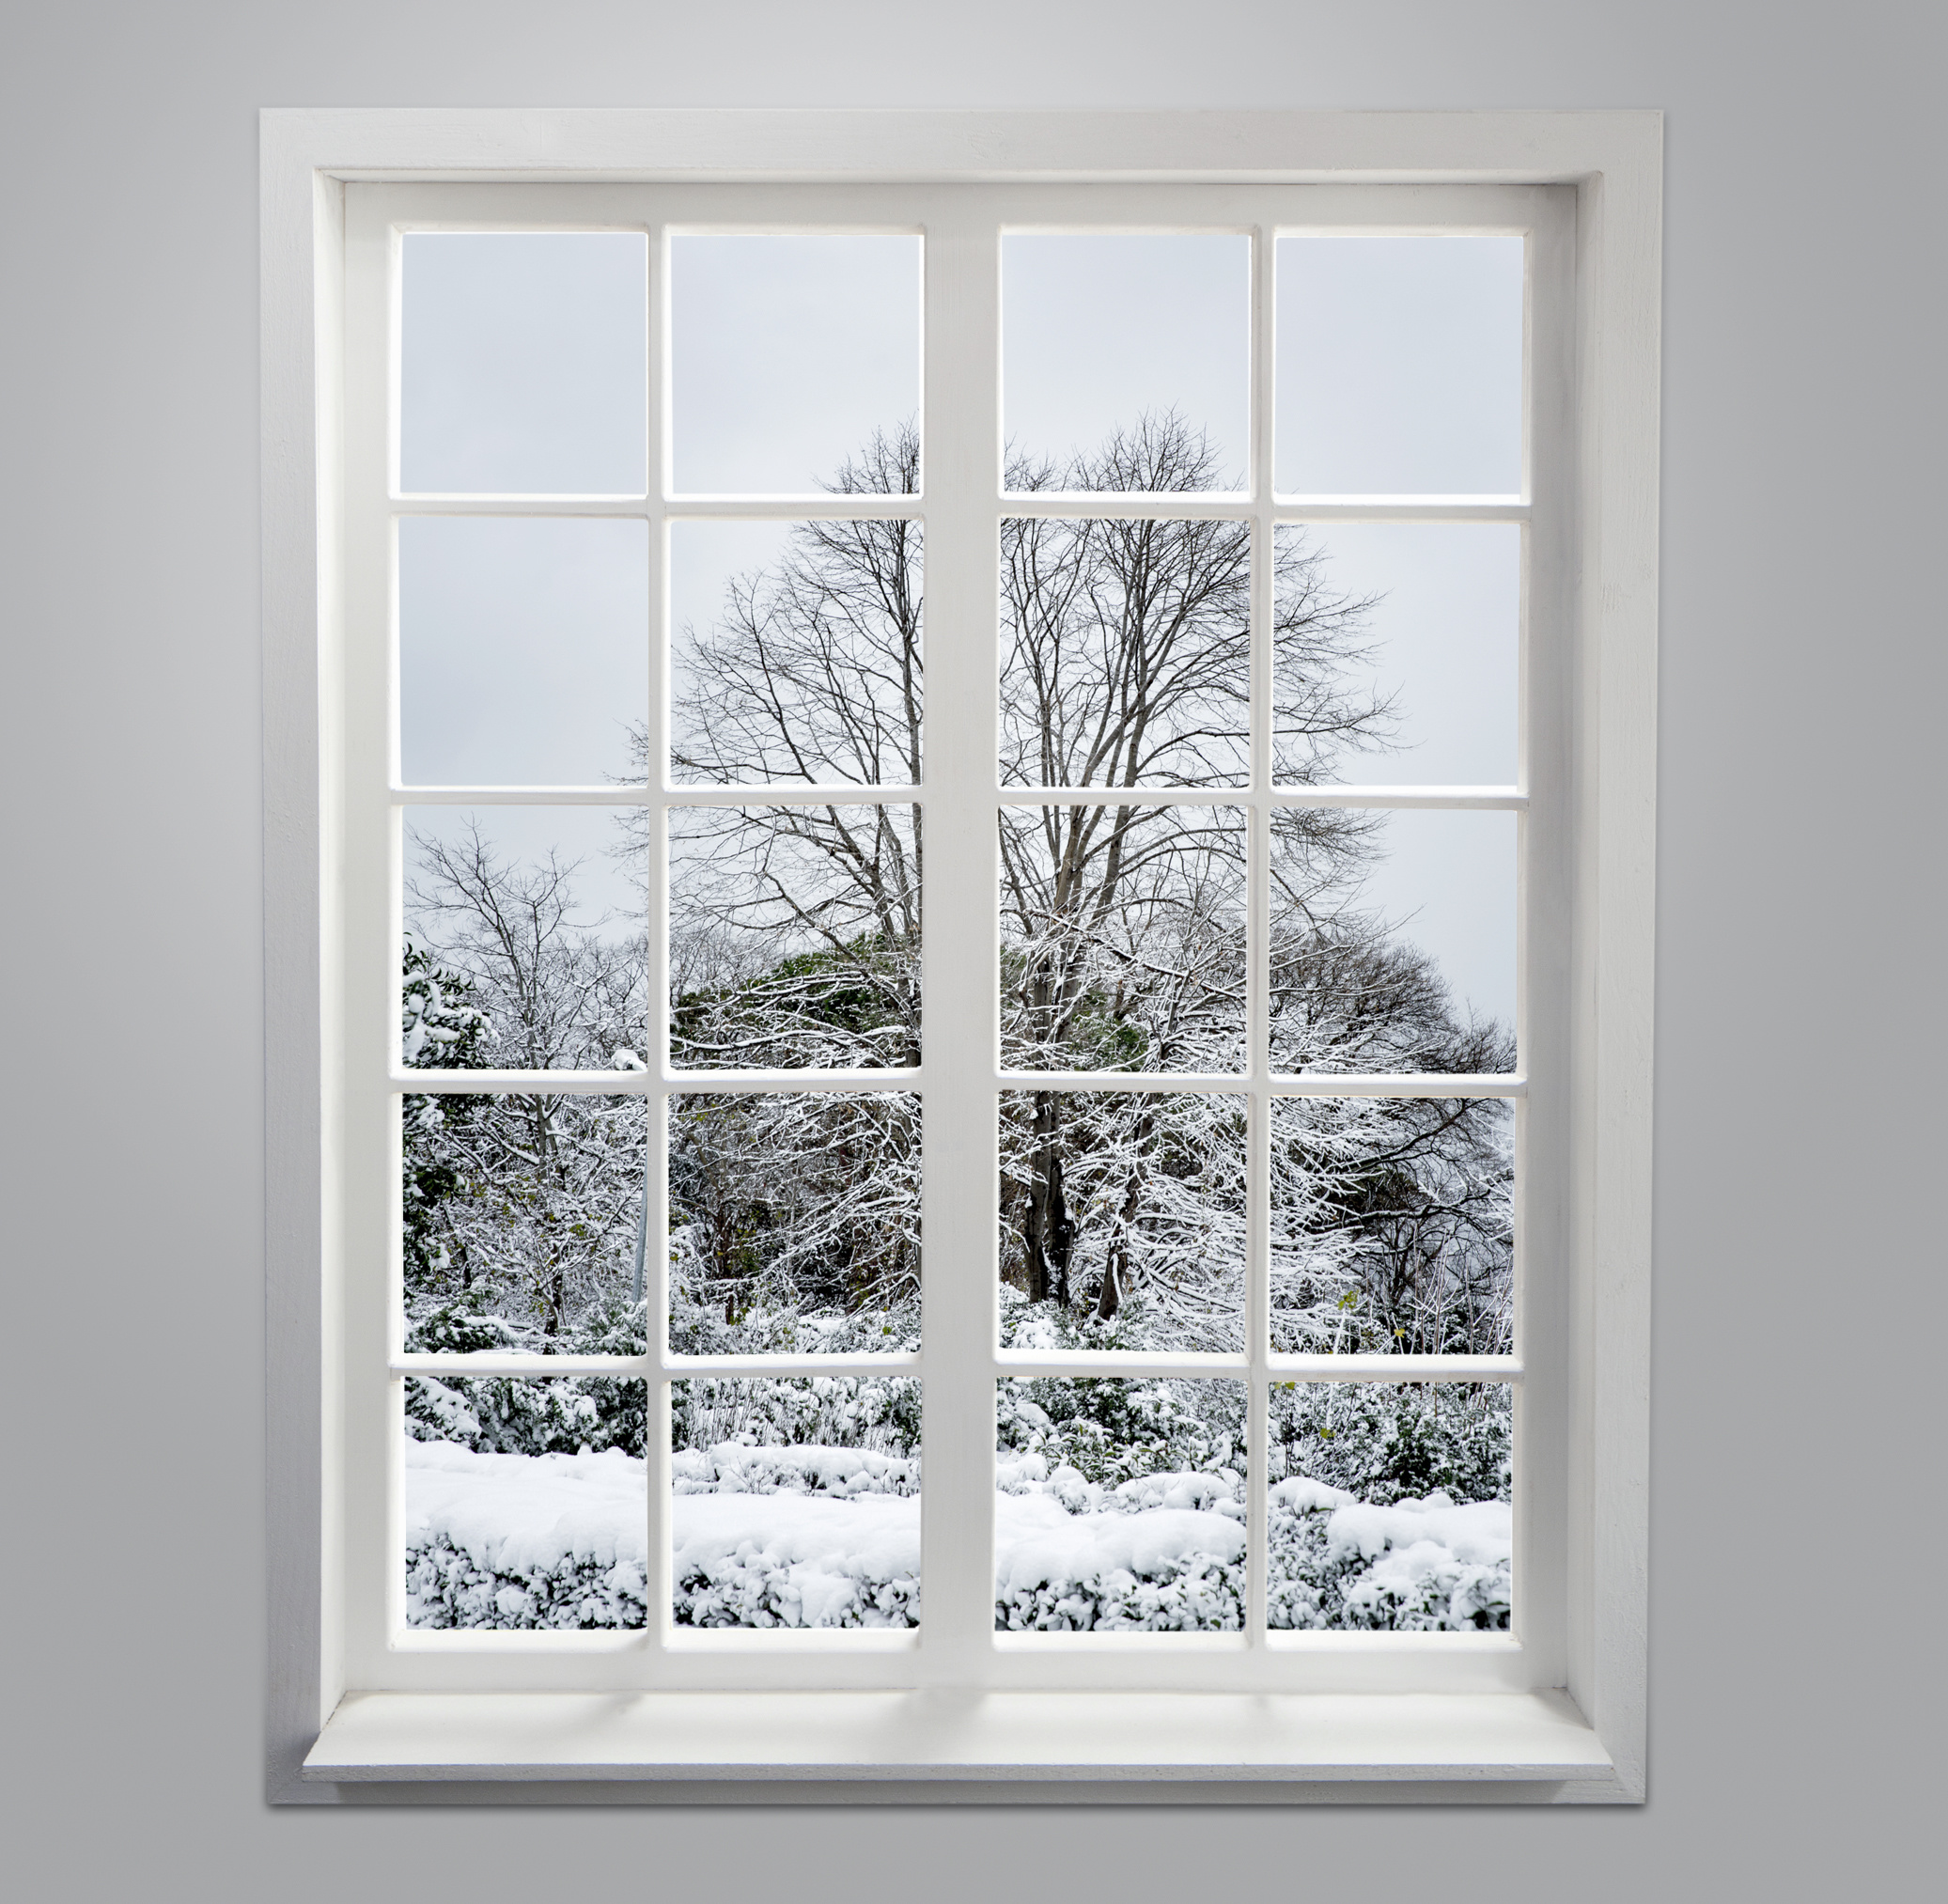 Do you need new windows ecotech windows doors for I need new windows for my house